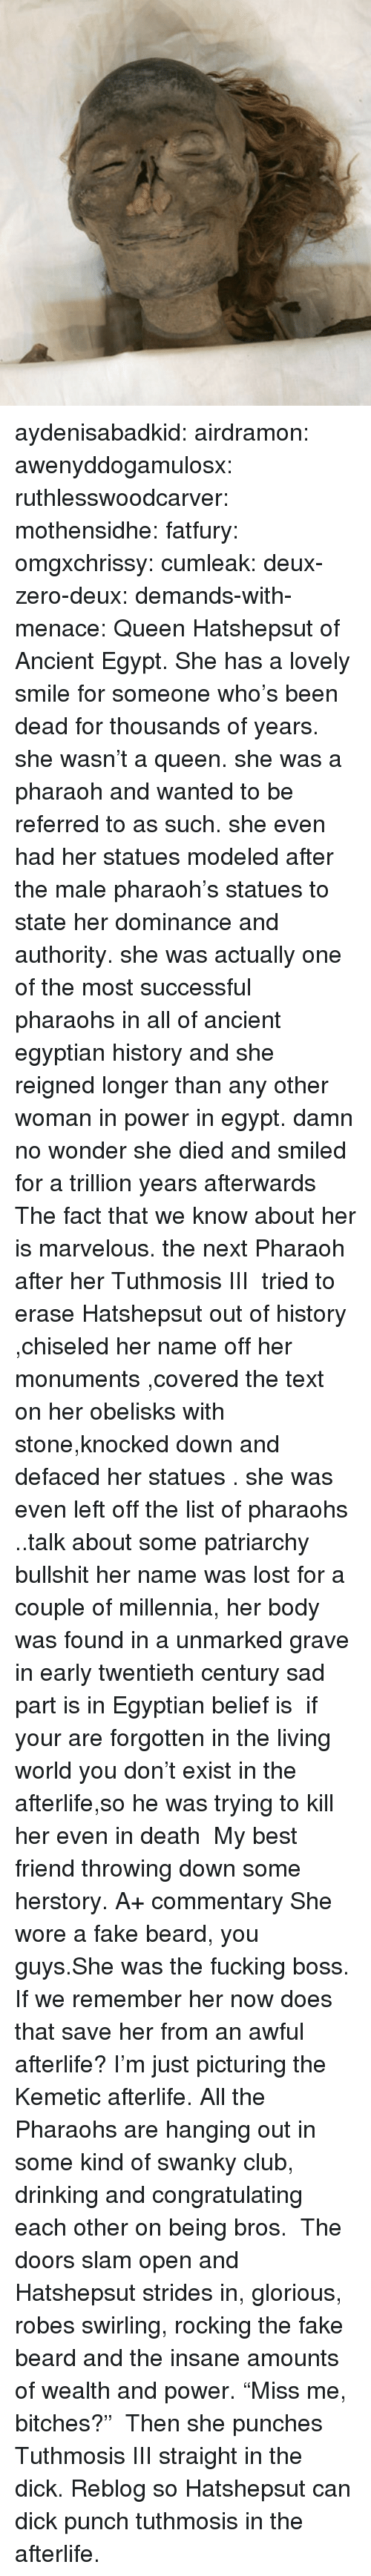 "Marvelous: aydenisabadkid: airdramon:  awenyddogamulosx:  ruthlesswoodcarver:  mothensidhe:  fatfury:  omgxchrissy:  cumleak:  deux-zero-deux:  demands-with-menace:  Queen Hatshepsut of Ancient Egypt. She has a lovely smile for someone who's been dead for thousands of years.  she wasn't a queen. she was a pharaoh and wanted to be referred to as such. she even had her statues modeled after the male pharaoh's statues to state her dominance and authority. she was actually one of the most successful pharaohs in all of ancient egyptian history and she reigned longer than any other woman in power in egypt.  damn no wonder she died and smiled for a trillion years afterwards  The fact that we know about her is marvelous. the next Pharaoh after her Tuthmosis III  tried to erase Hatshepsut out of history ,chiseled her name off her monuments ,covered the text on her obelisks with stone,knocked down and defaced her statues . she was even left off the list of pharaohs ..talk about some patriarchy bullshit her name was lost for a couple of millennia, her body was found in a unmarked grave  in early twentieth century sad part is in Egyptian belief is  if your are forgotten in the living world you don't exist in the afterlife,so he was trying to kill her even in death   My best friend throwing down some herstory. A+ commentary  She wore a fake beard, you guys.She was the fucking boss.  If we remember her now does that save her from an awful afterlife?  I'm just picturing the Kemetic afterlife. All the Pharaohs are hanging out in some kind of swanky club, drinking and congratulating each other on being bros.  The doors slam open and Hatshepsut strides in, glorious, robes swirling, rocking the fake beard and the insane amounts of wealth and power. ""Miss me, bitches?""   Then she punches Tuthmosis III straight in the dick.   Reblog so Hatshepsut can dick punch tuthmosis in the afterlife."